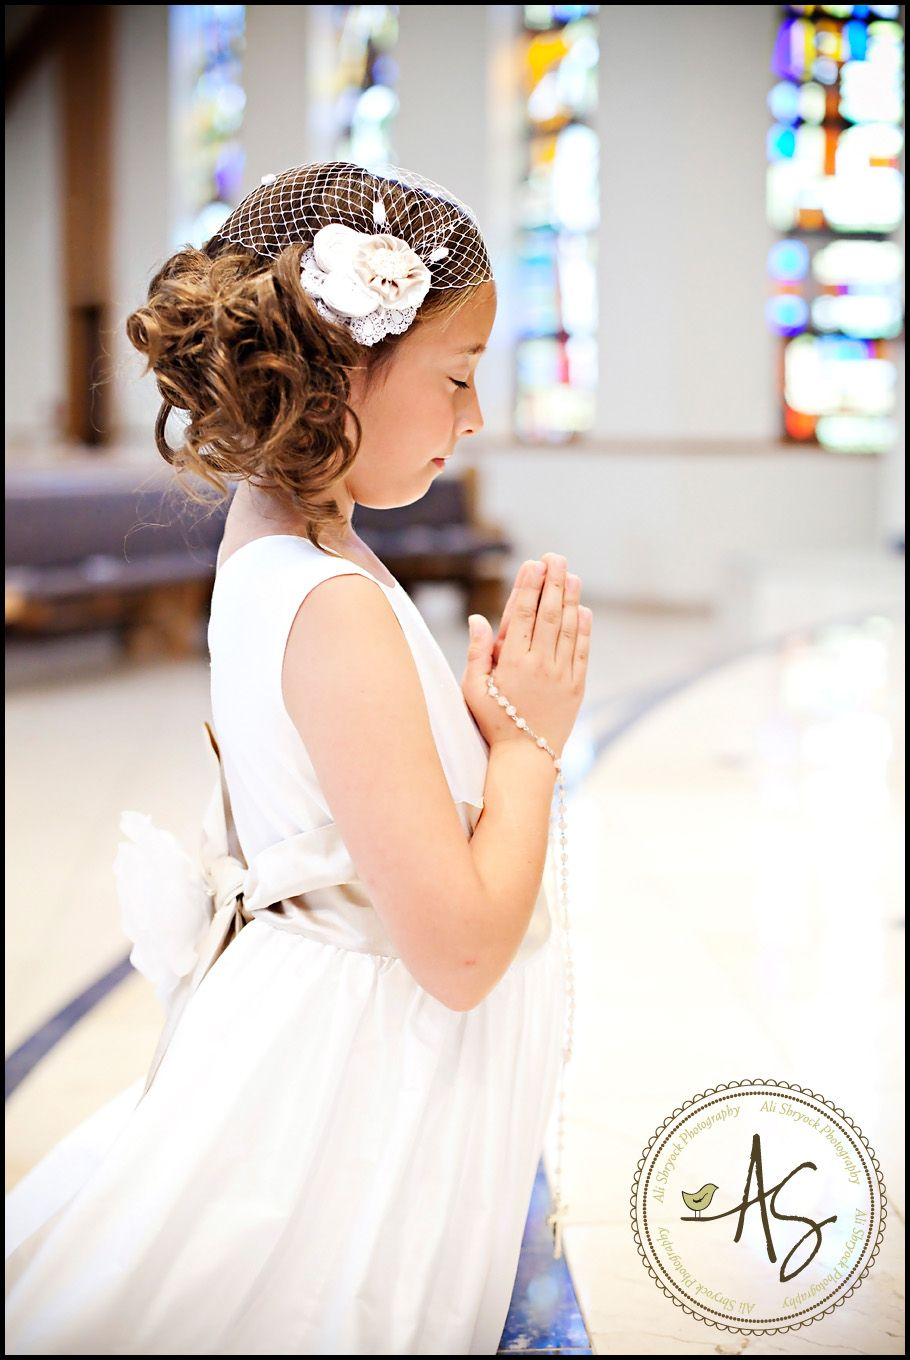 First Communion  alishryockphotography.com